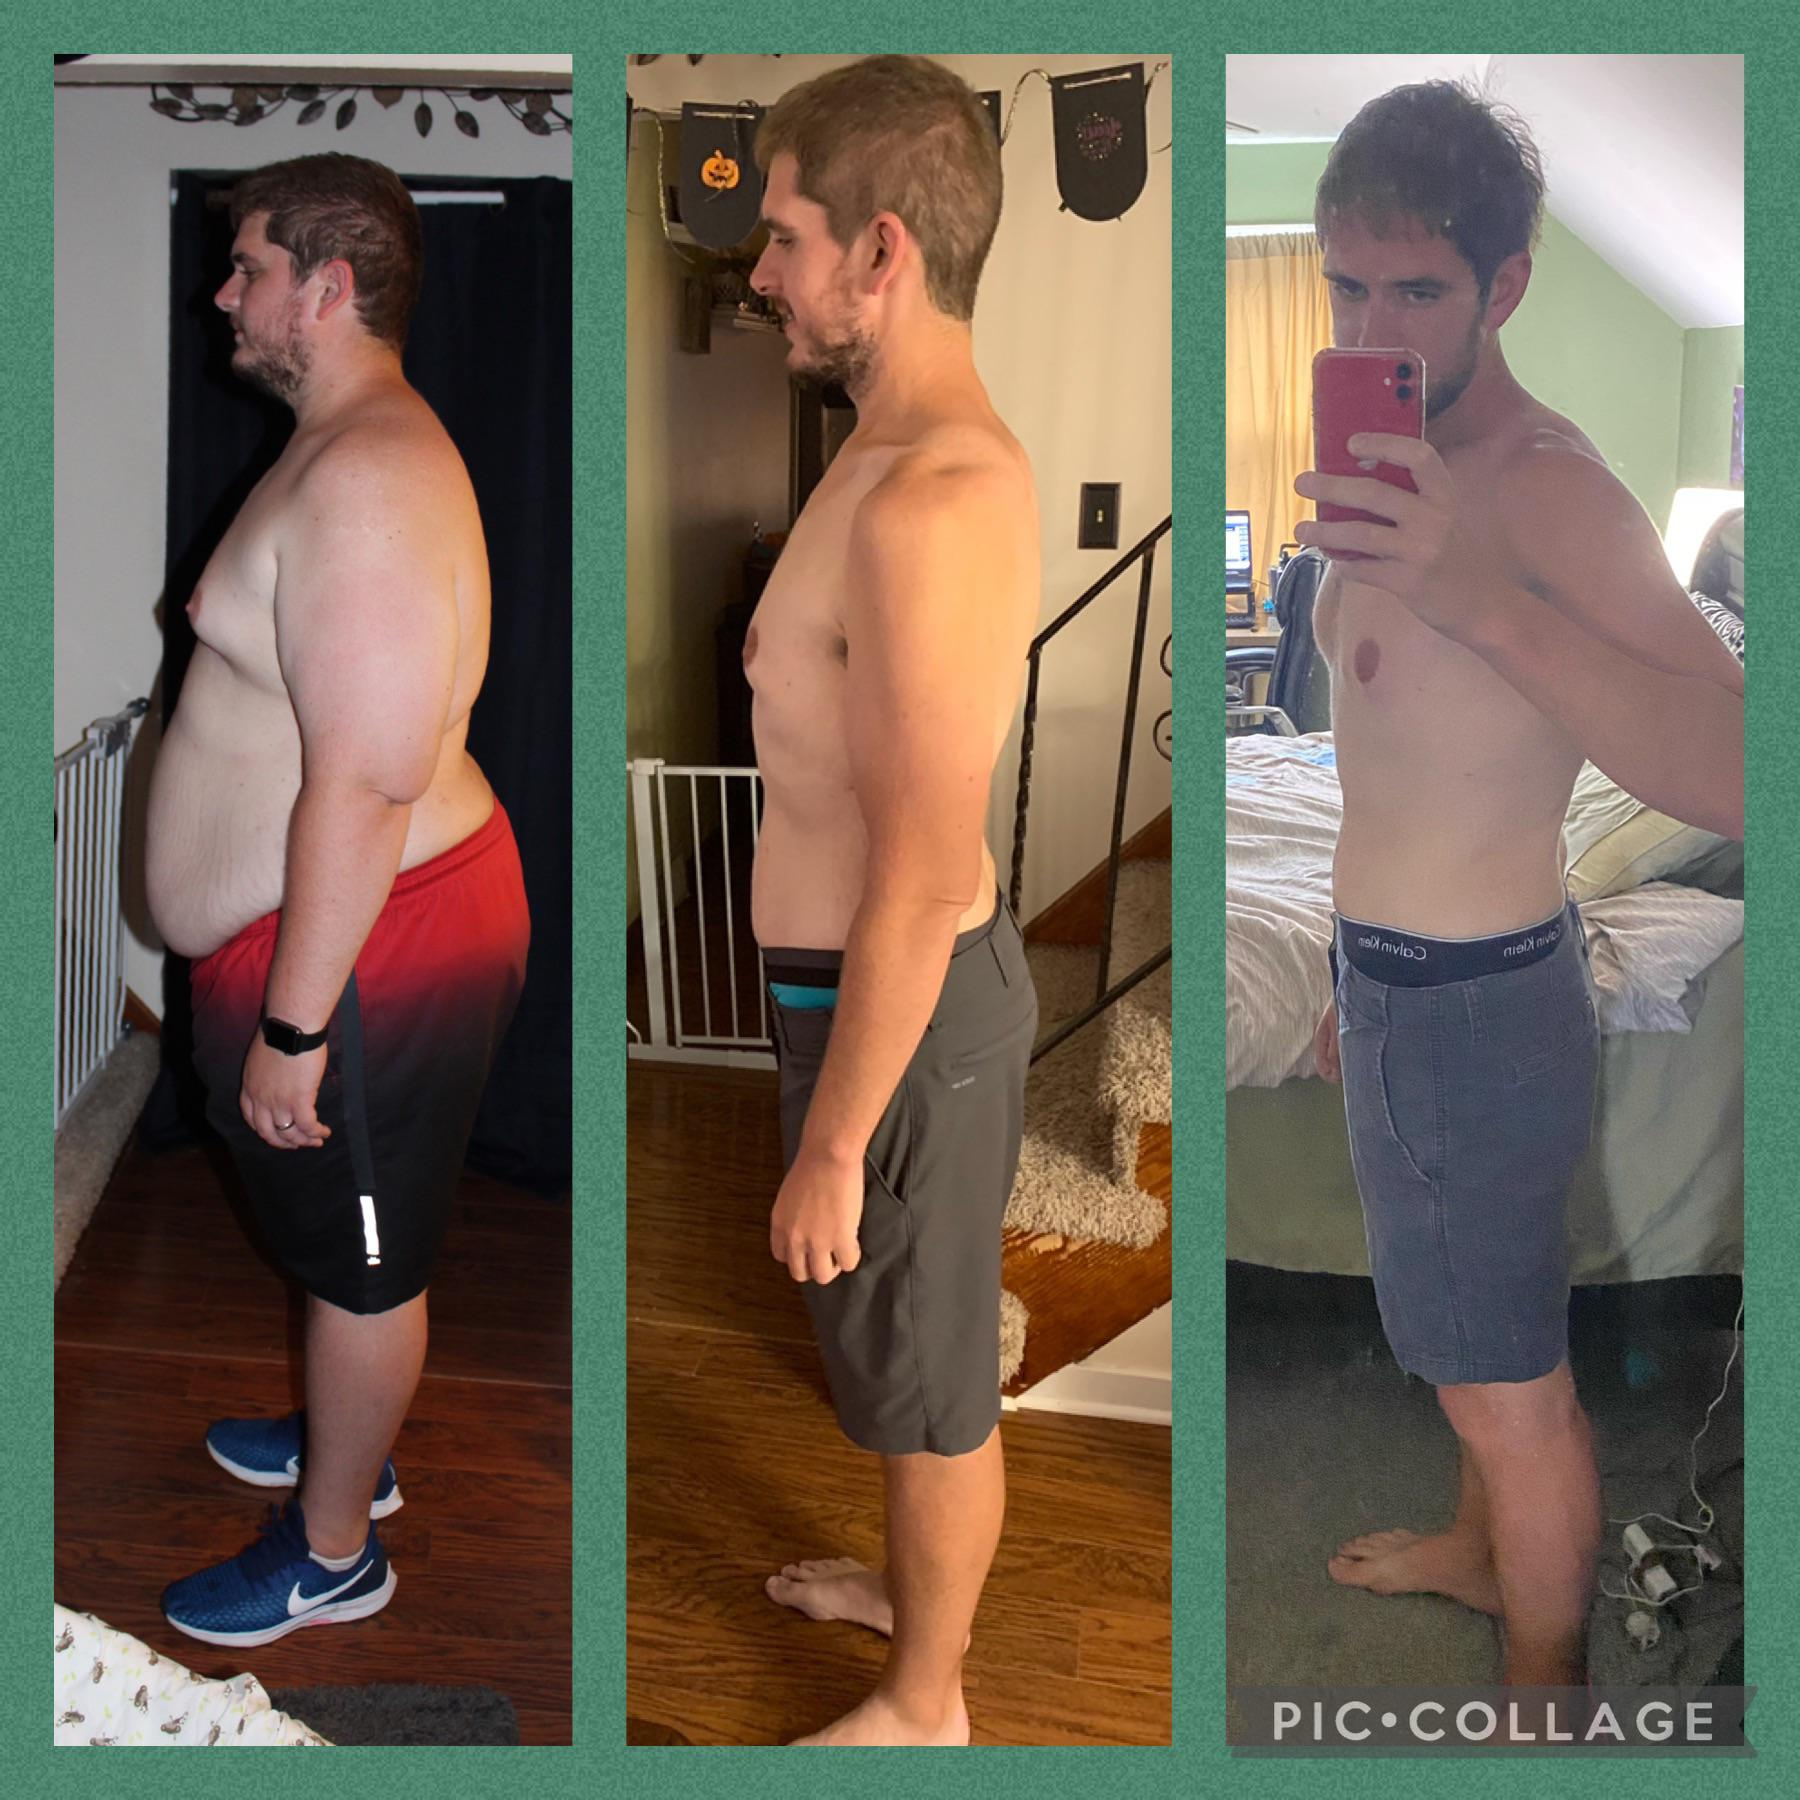 6 feet 1 Male 190 lbs Weight Loss Before and After 378 lbs to 188 lbs